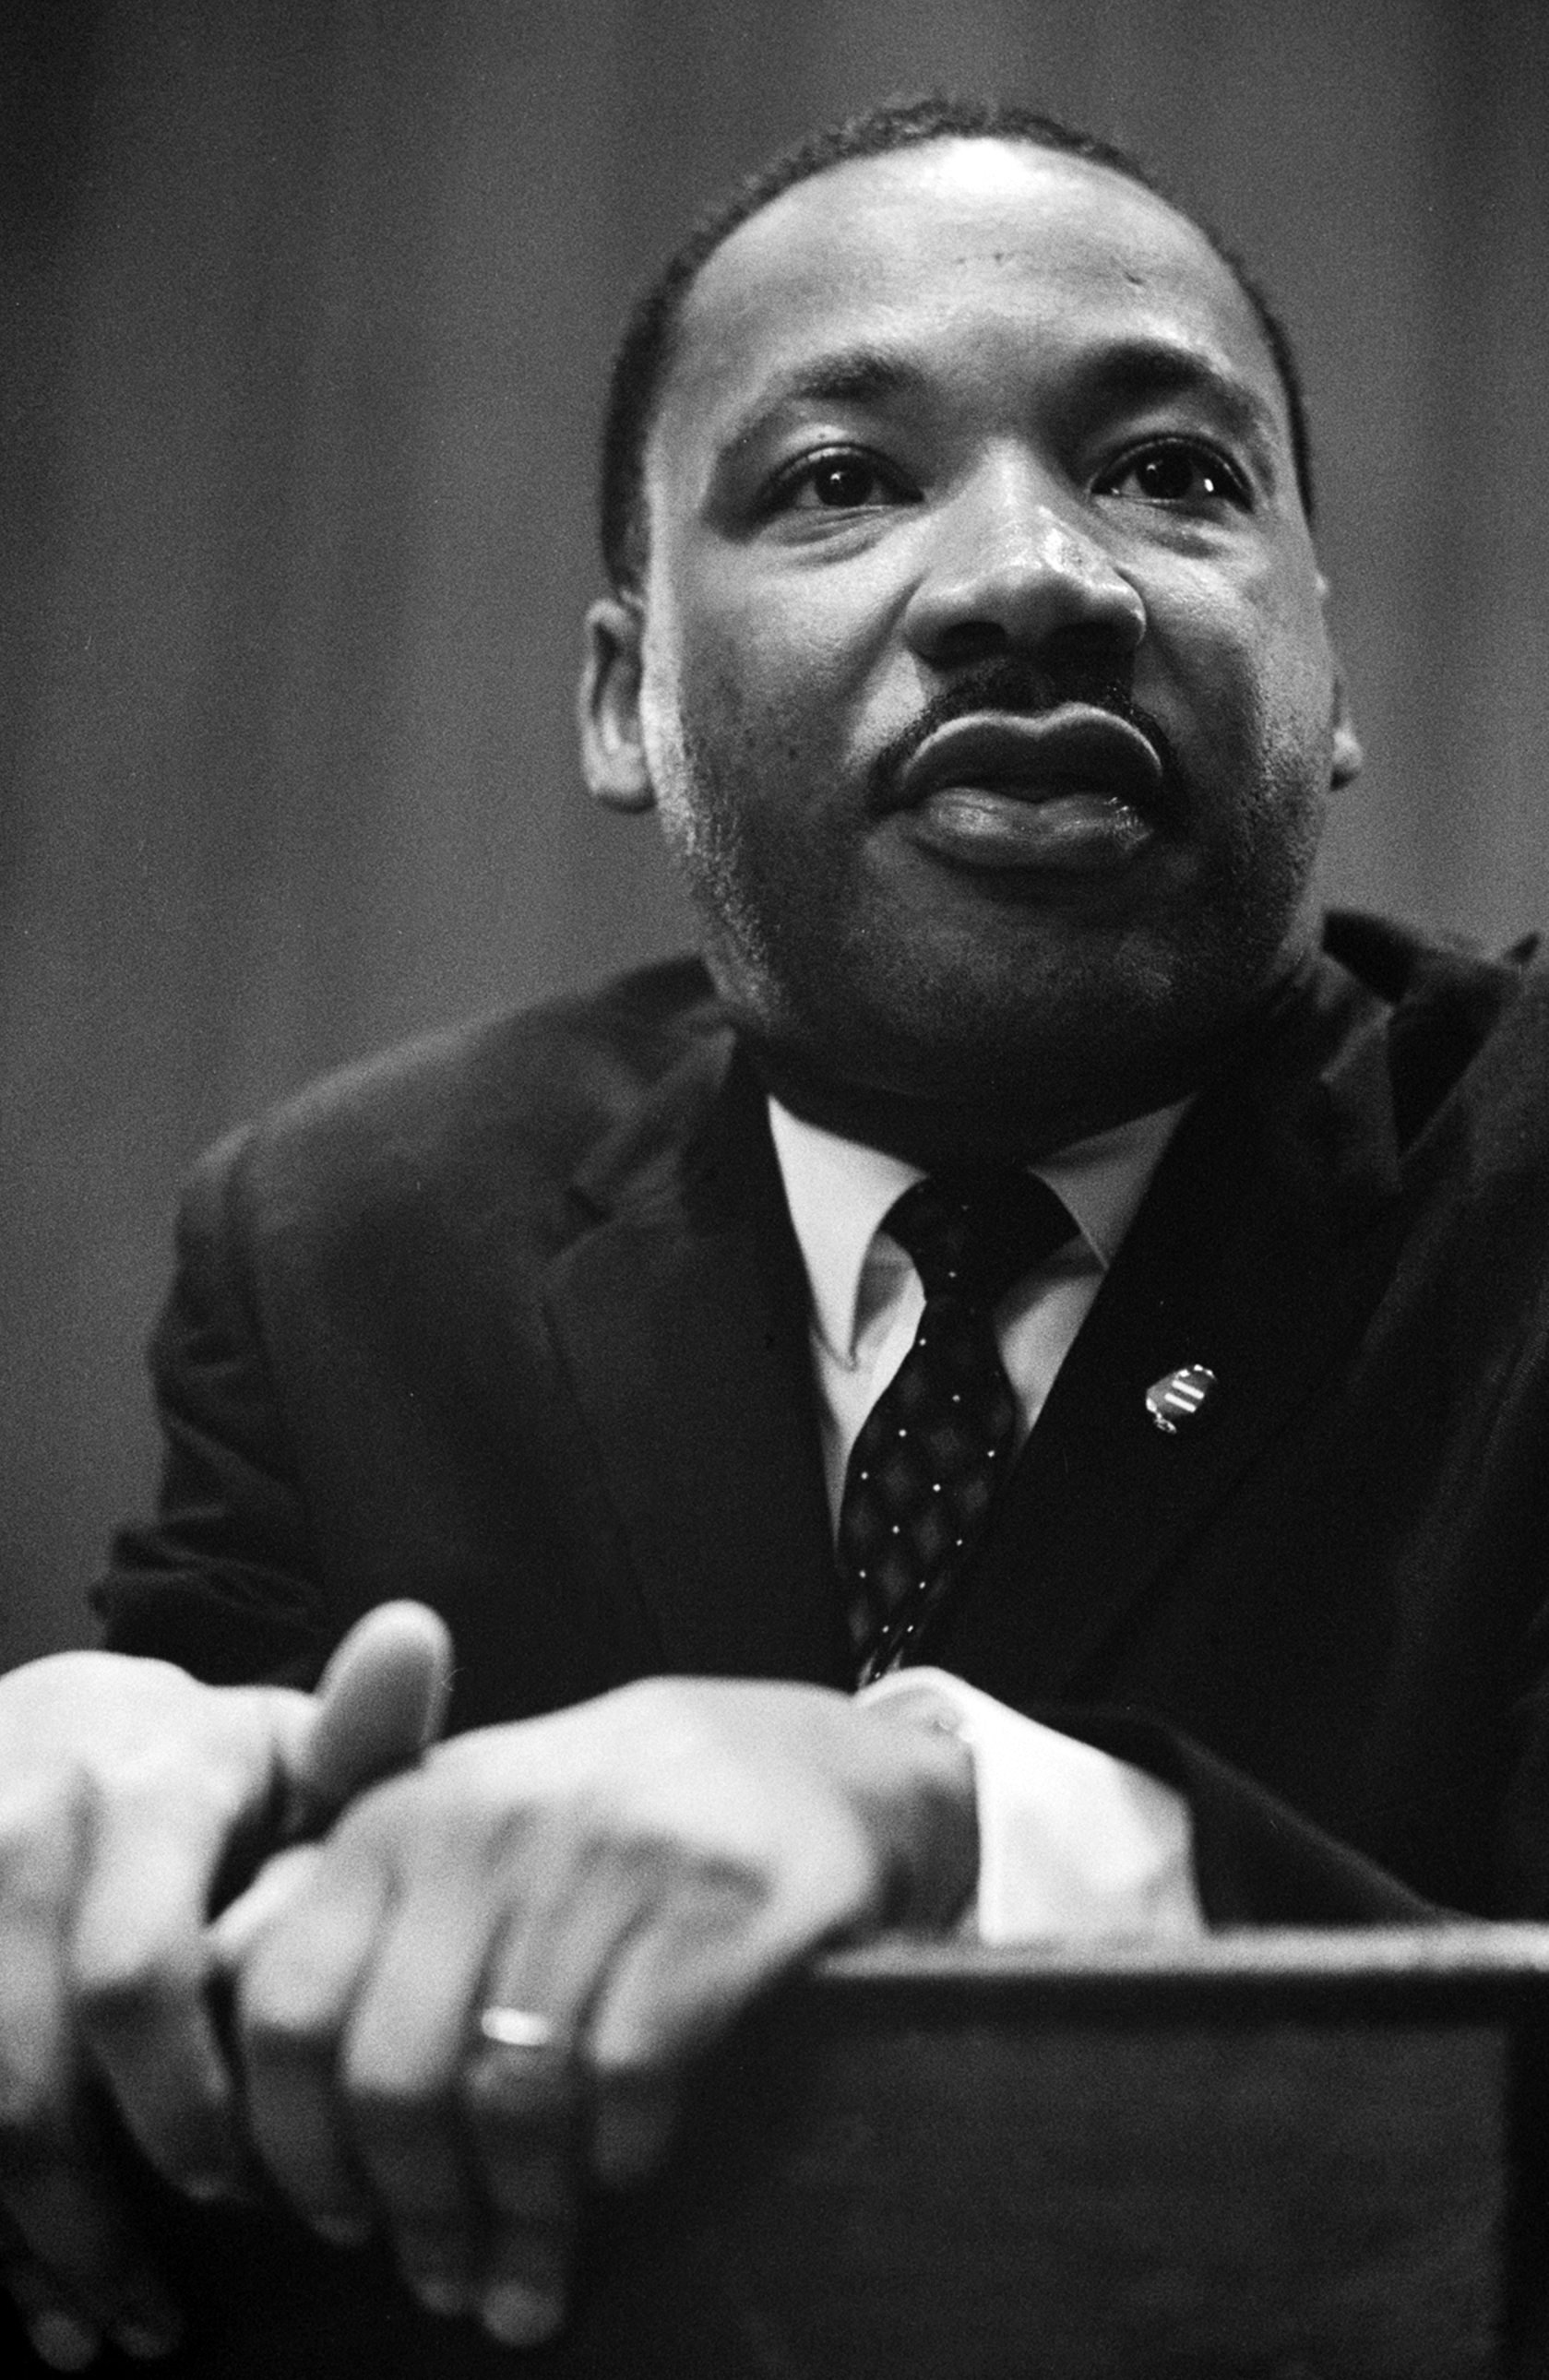 Martin Luther King, Jr. Assassination